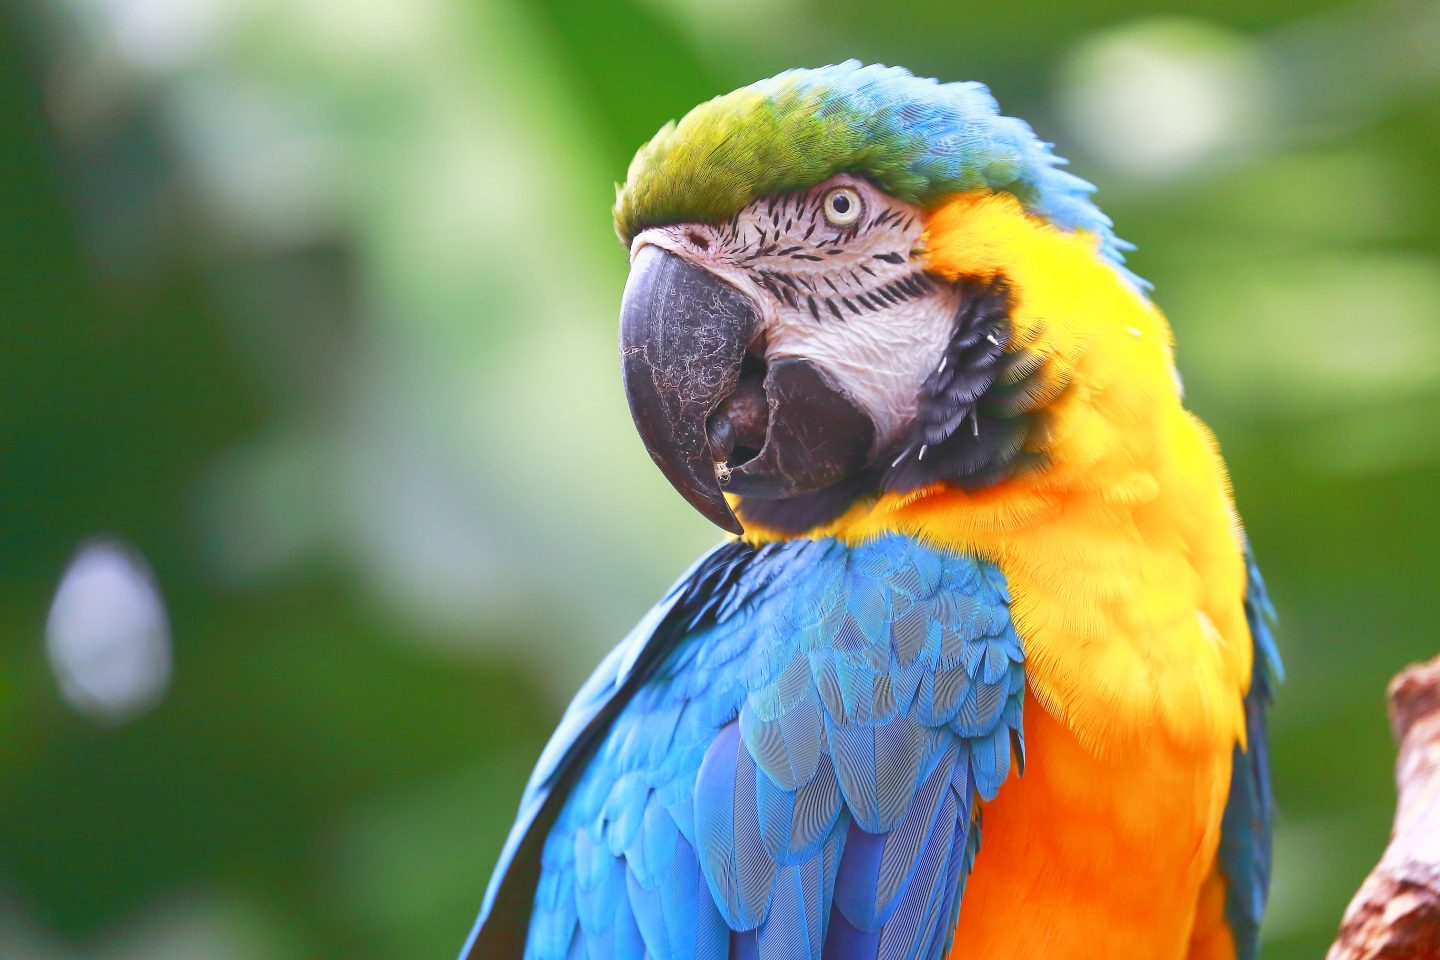 Flushed with emotion: a blushing blue-and-yellow macaw.